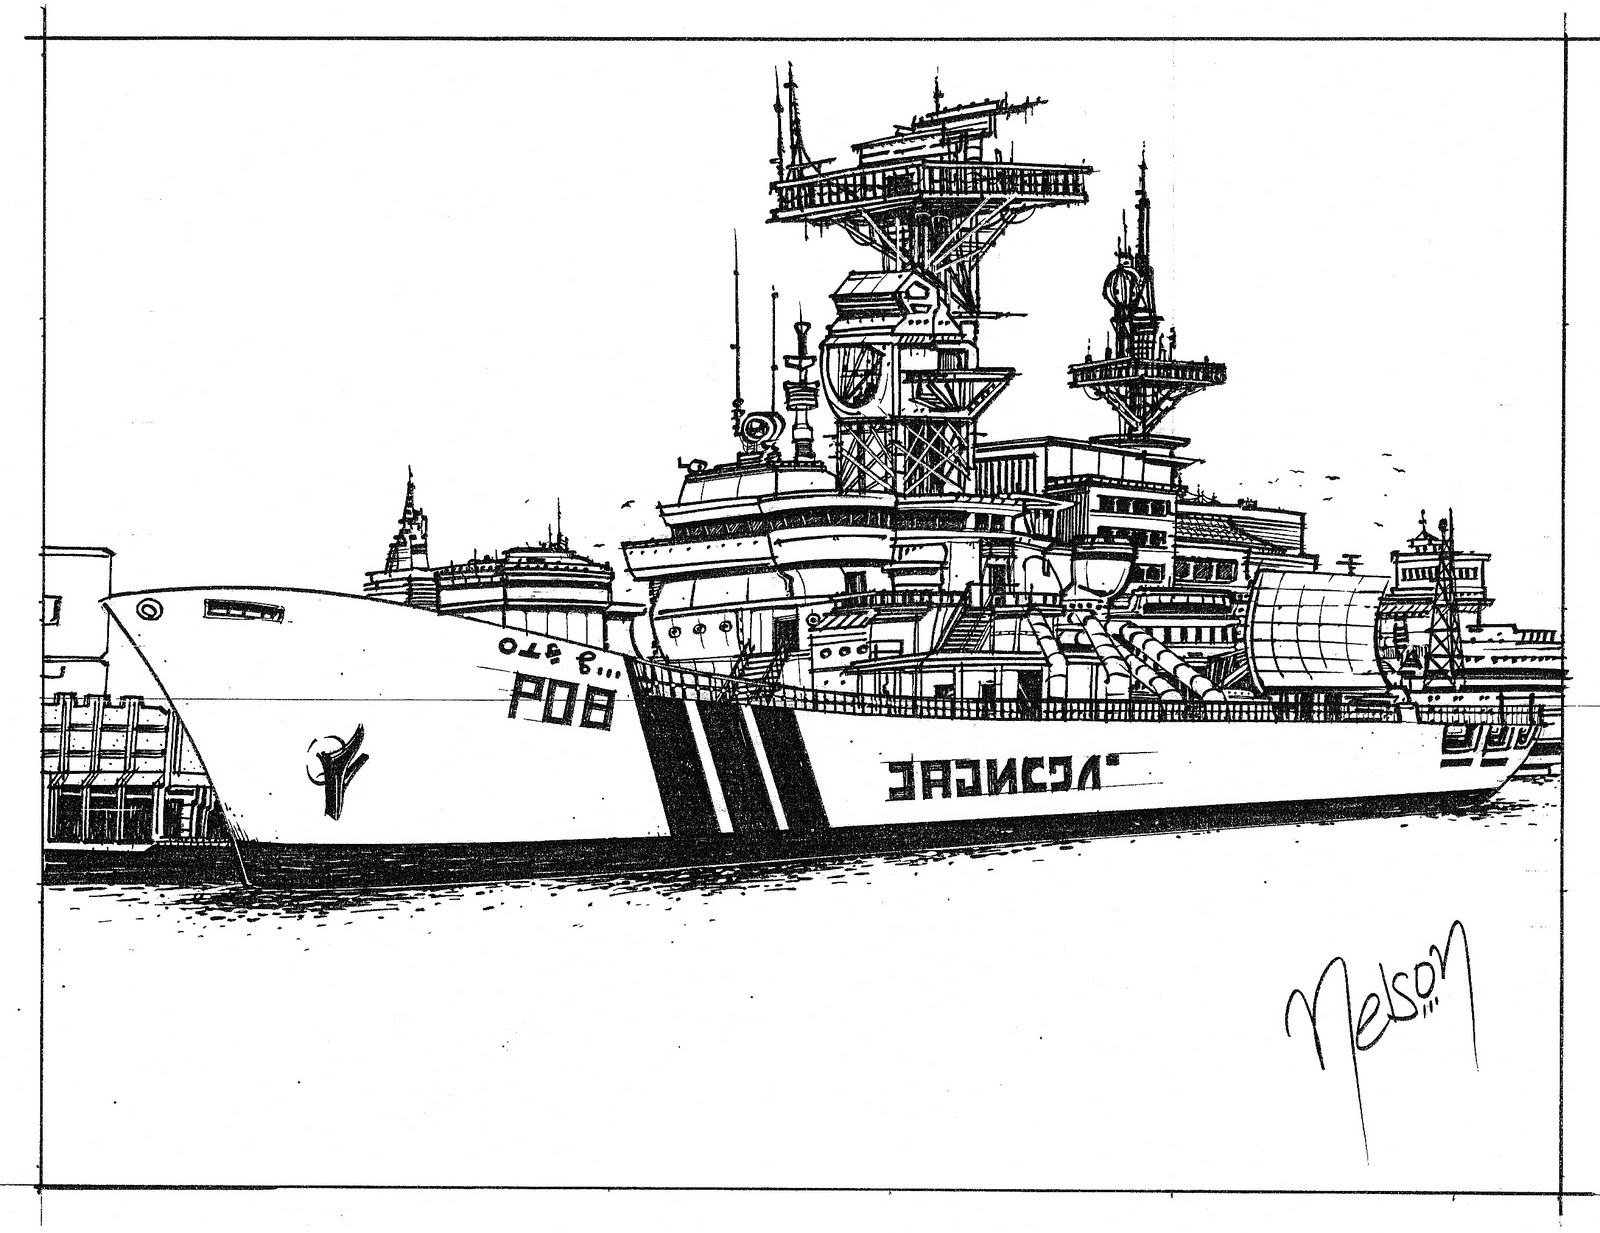 naval coloring pages - photo#36